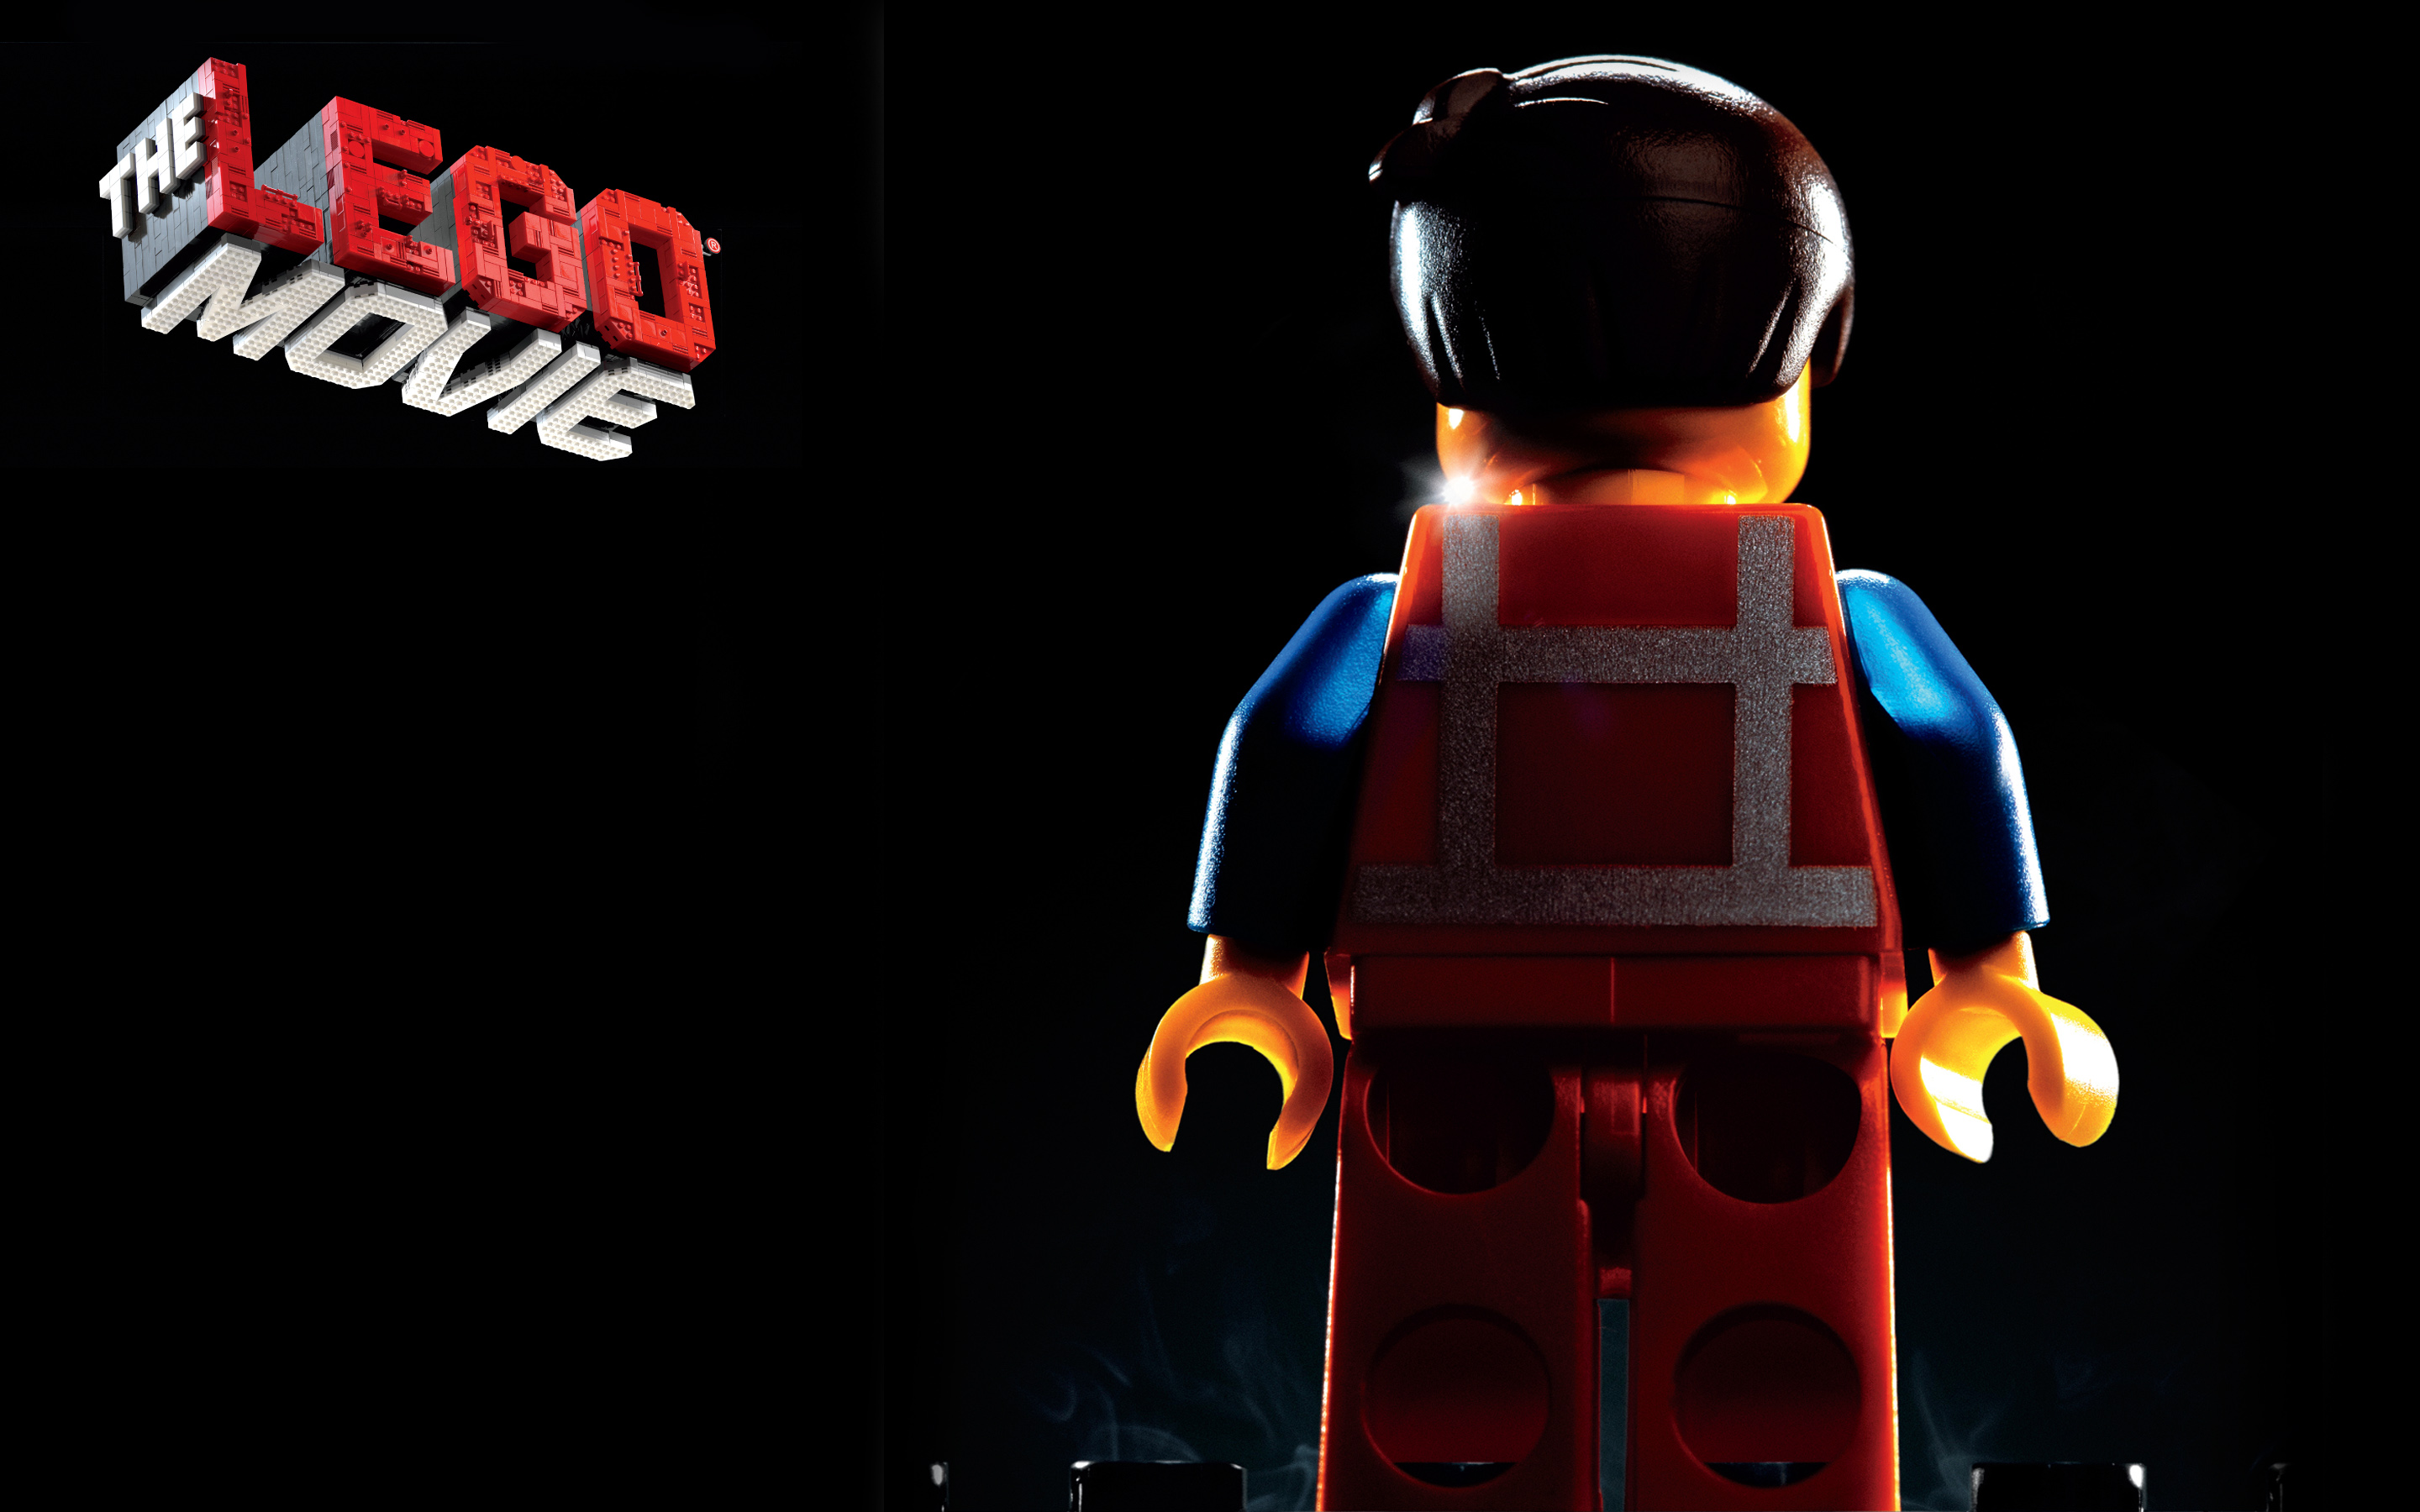 2014 The Lego Movie 1222.6 Kb